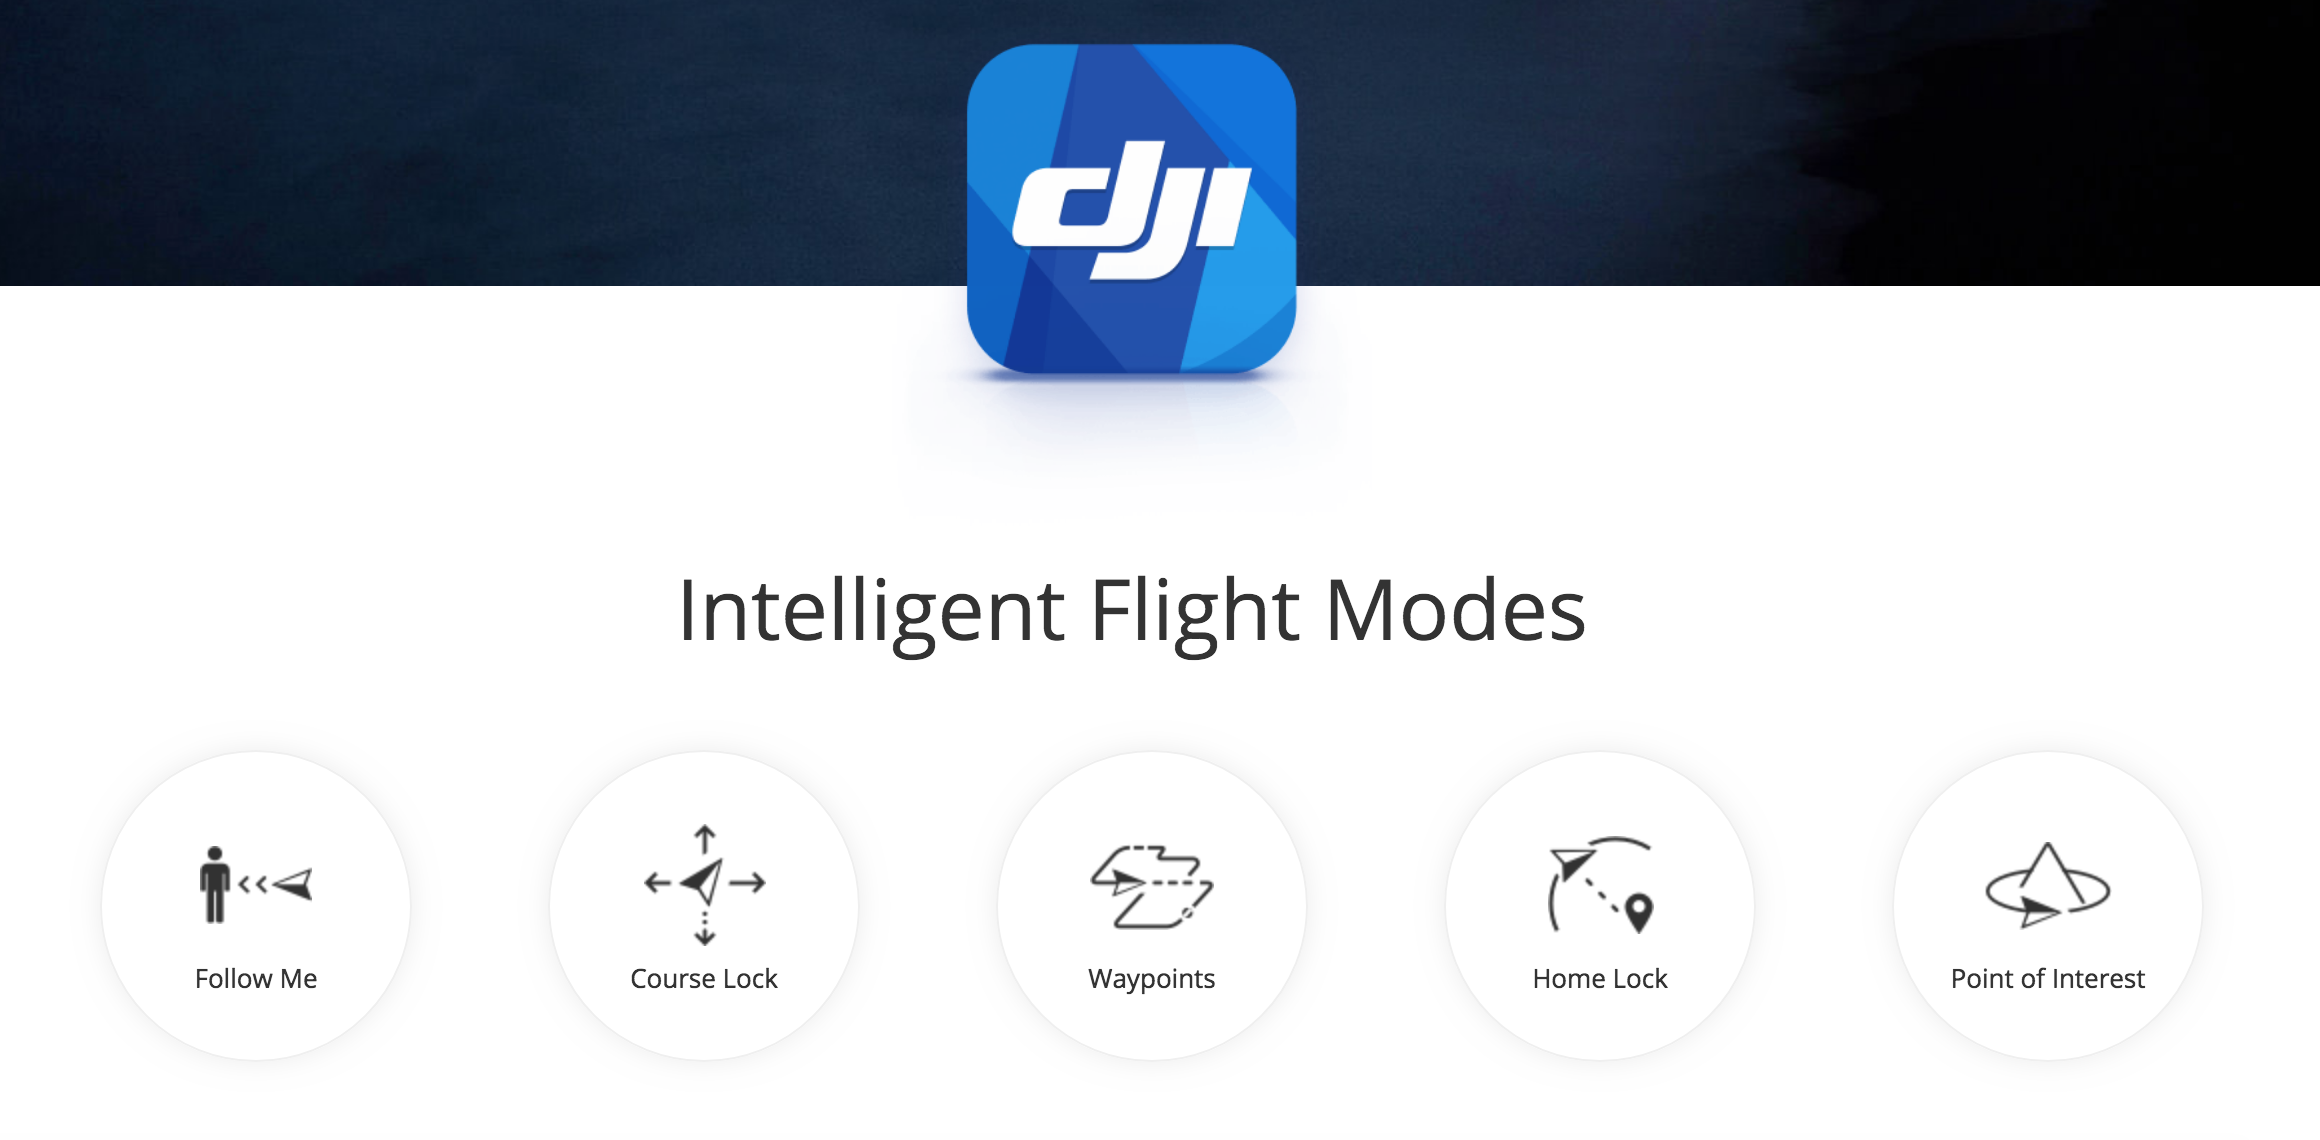 Picture of DJI's Intelligent Flight Mode